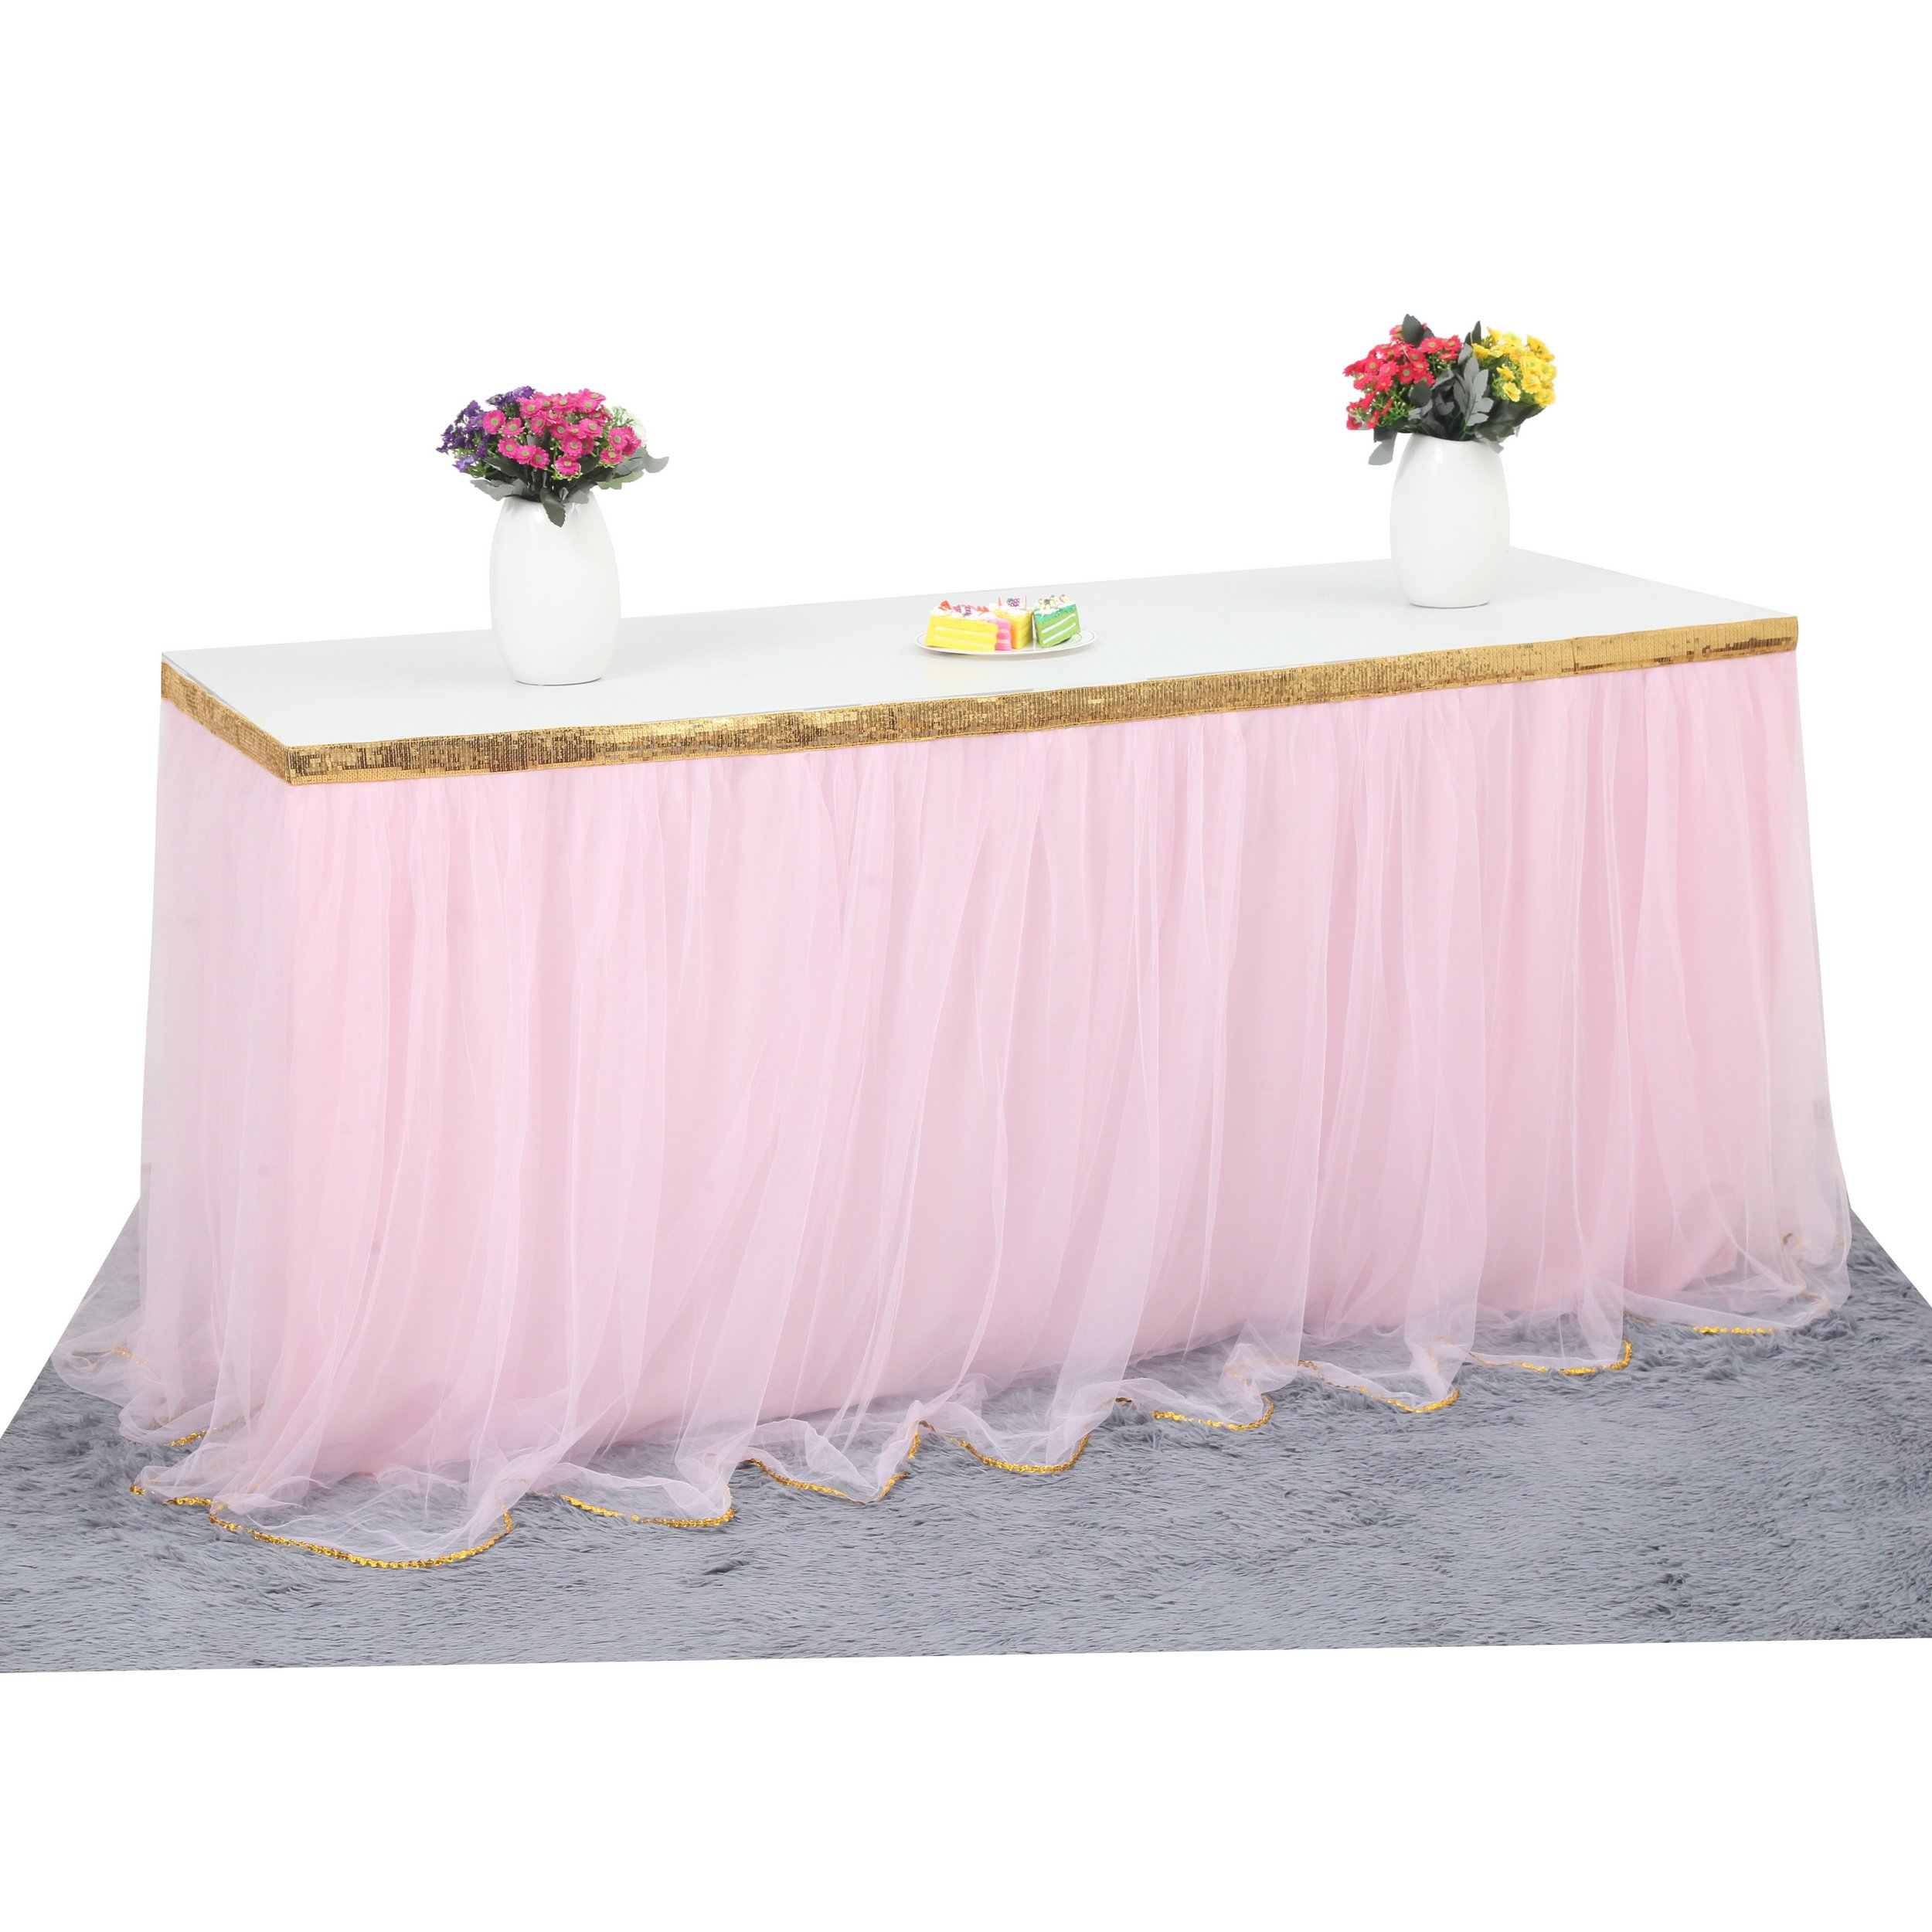 9 ft Pink Table Skirt With Gold Sequin Tulle Table Skirt for Bridal Shower Wedding Baby Shower Birthday Party by HB HBB MAGIC